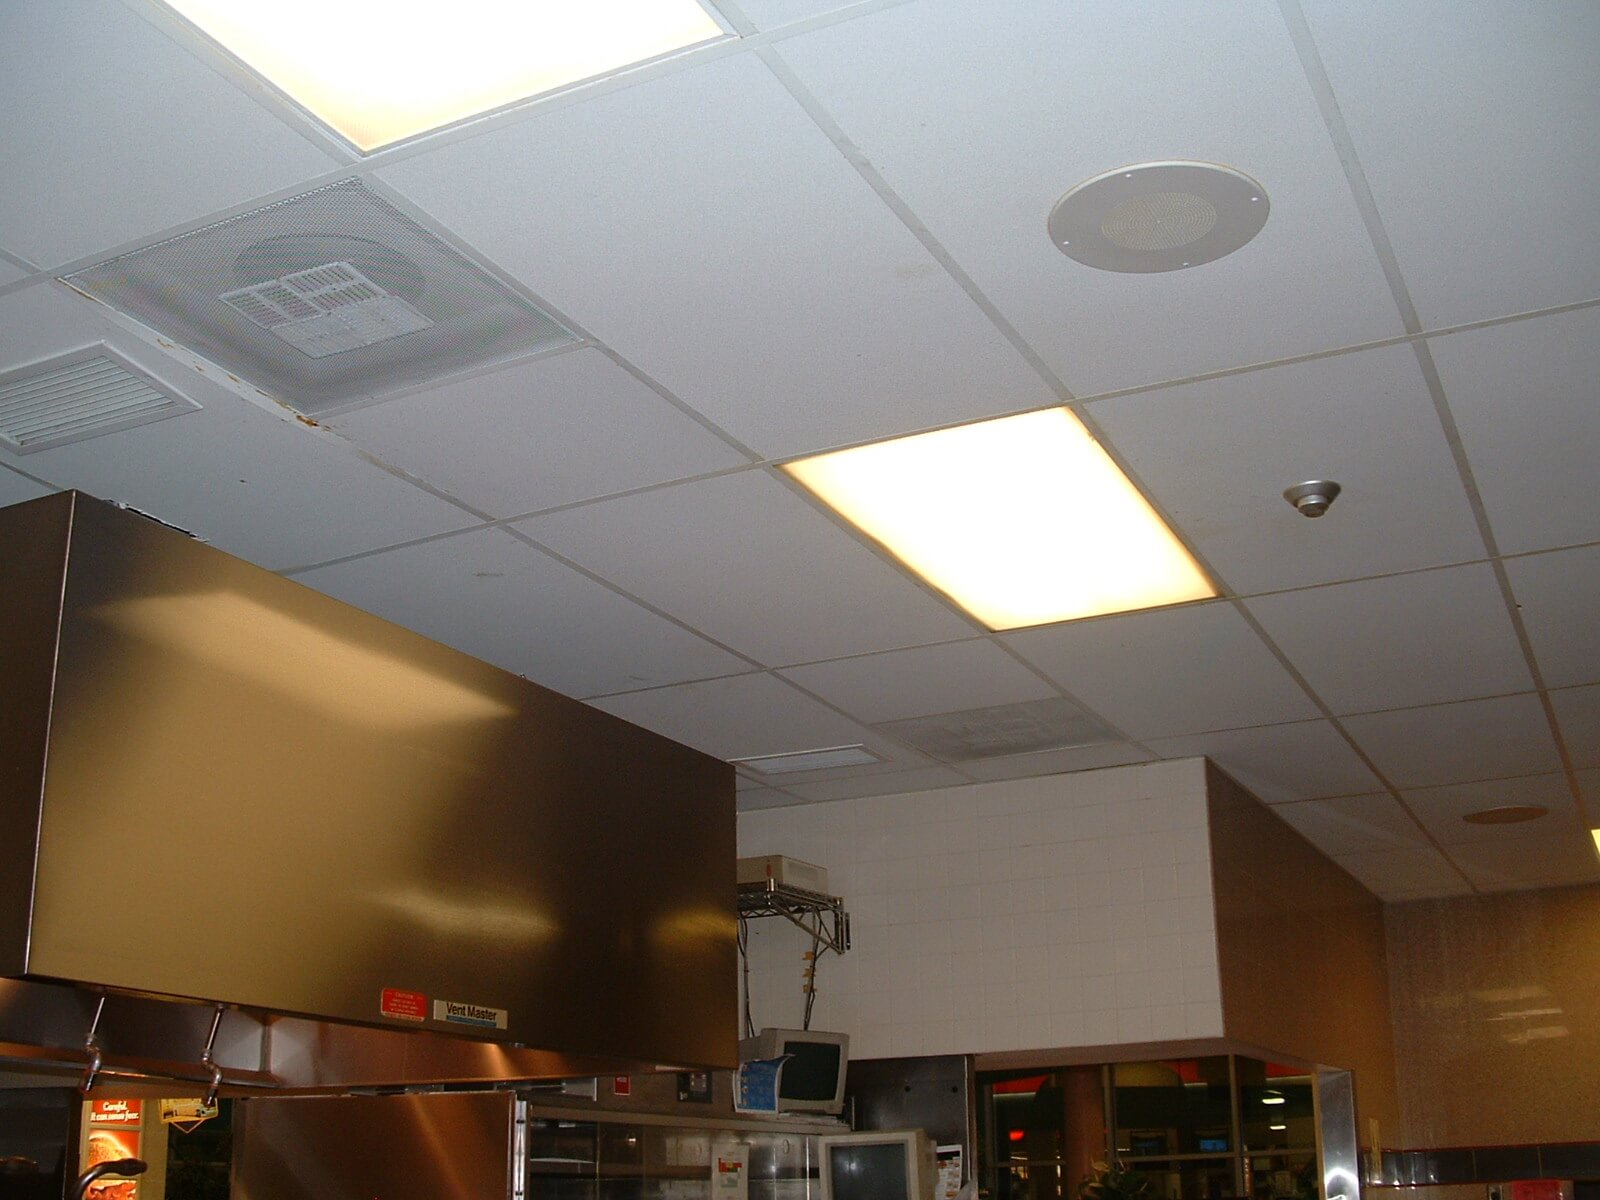 Commercial Ceiling Cleaning in Ontario